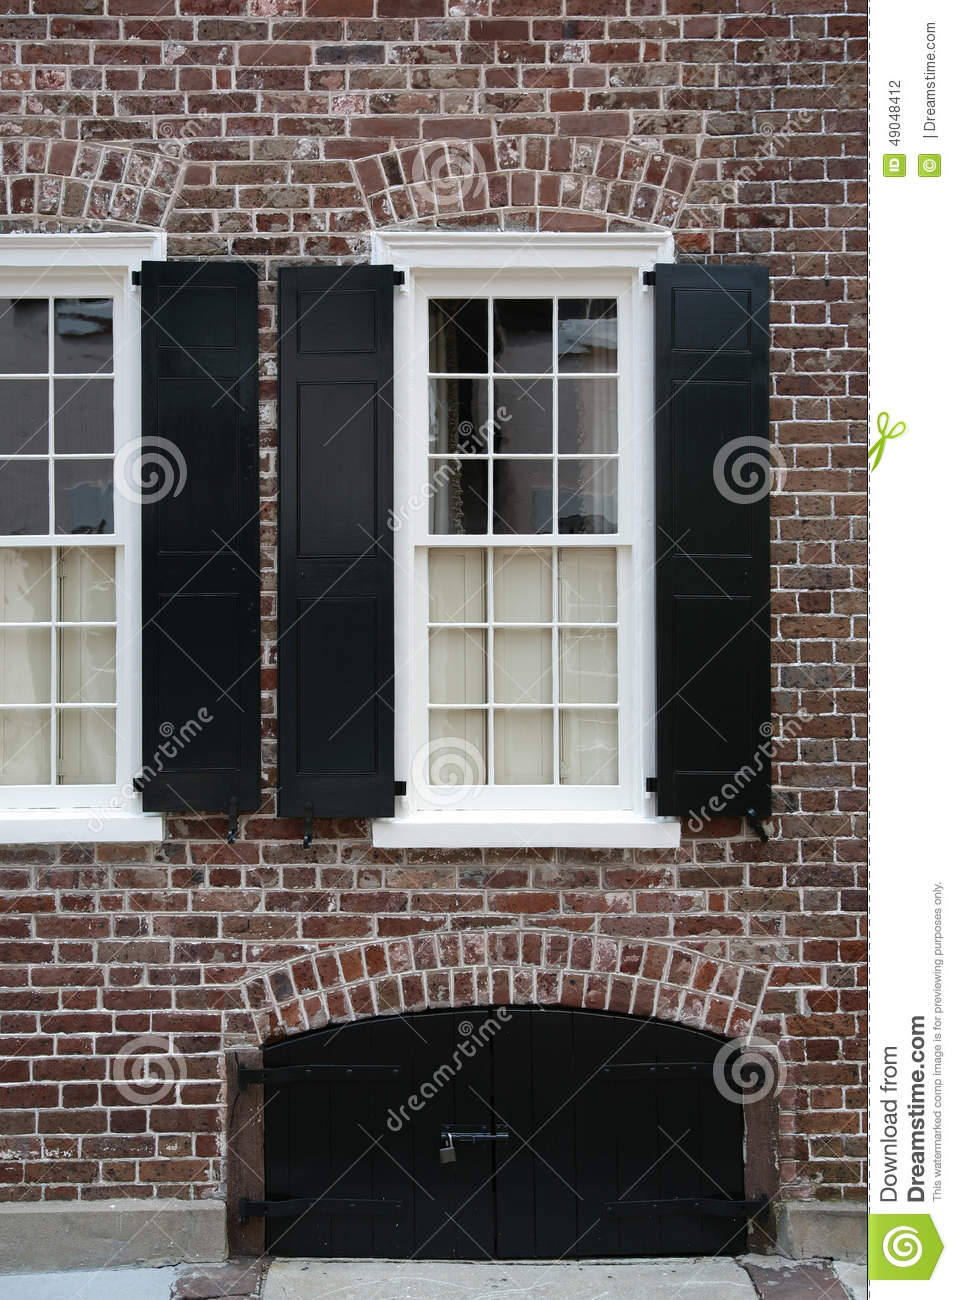 Stock Photo Windows Brick Wall Black Shutters White Window Basement Access South Carolina Image49048412 on italian villa design